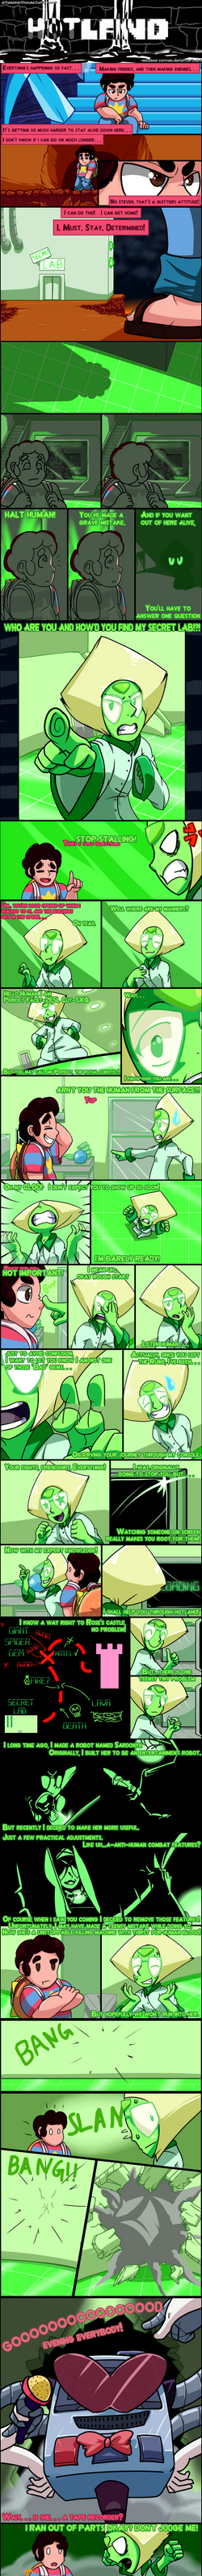 Steven's Tale-Hotland P1 by Arteses-Canvas